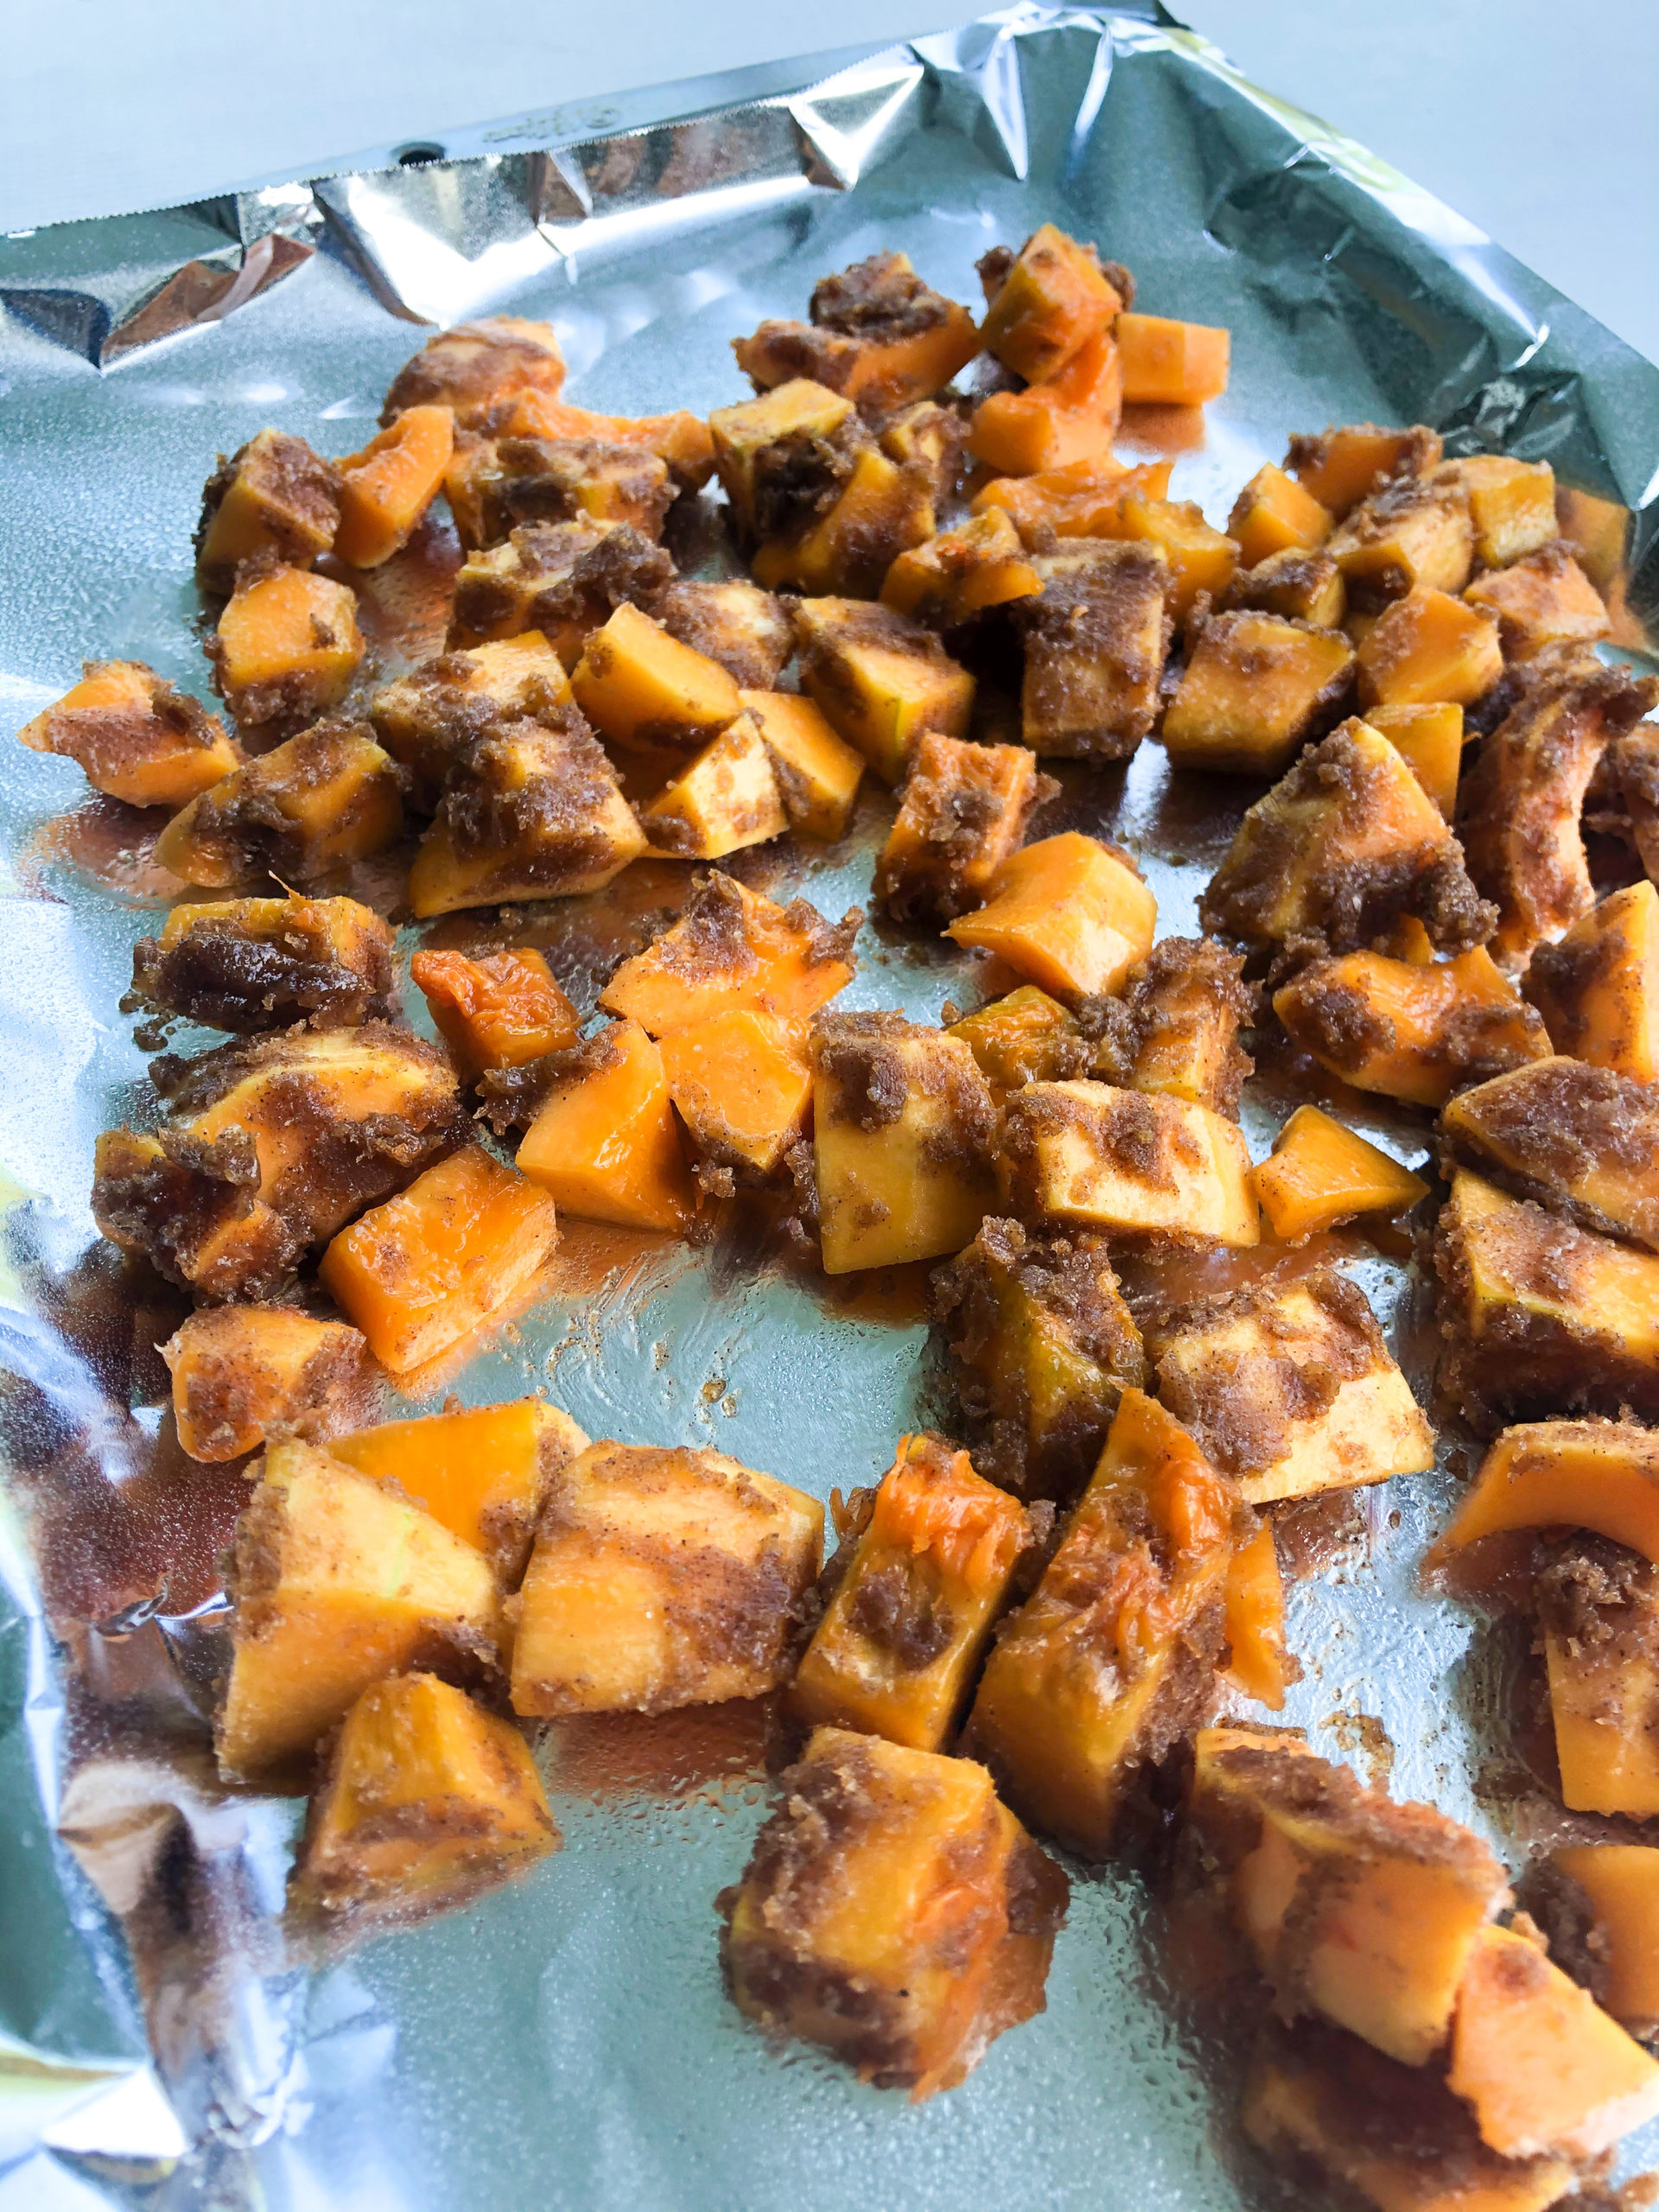 Brown Sugar Cinnamon Roasted Butternut Squash